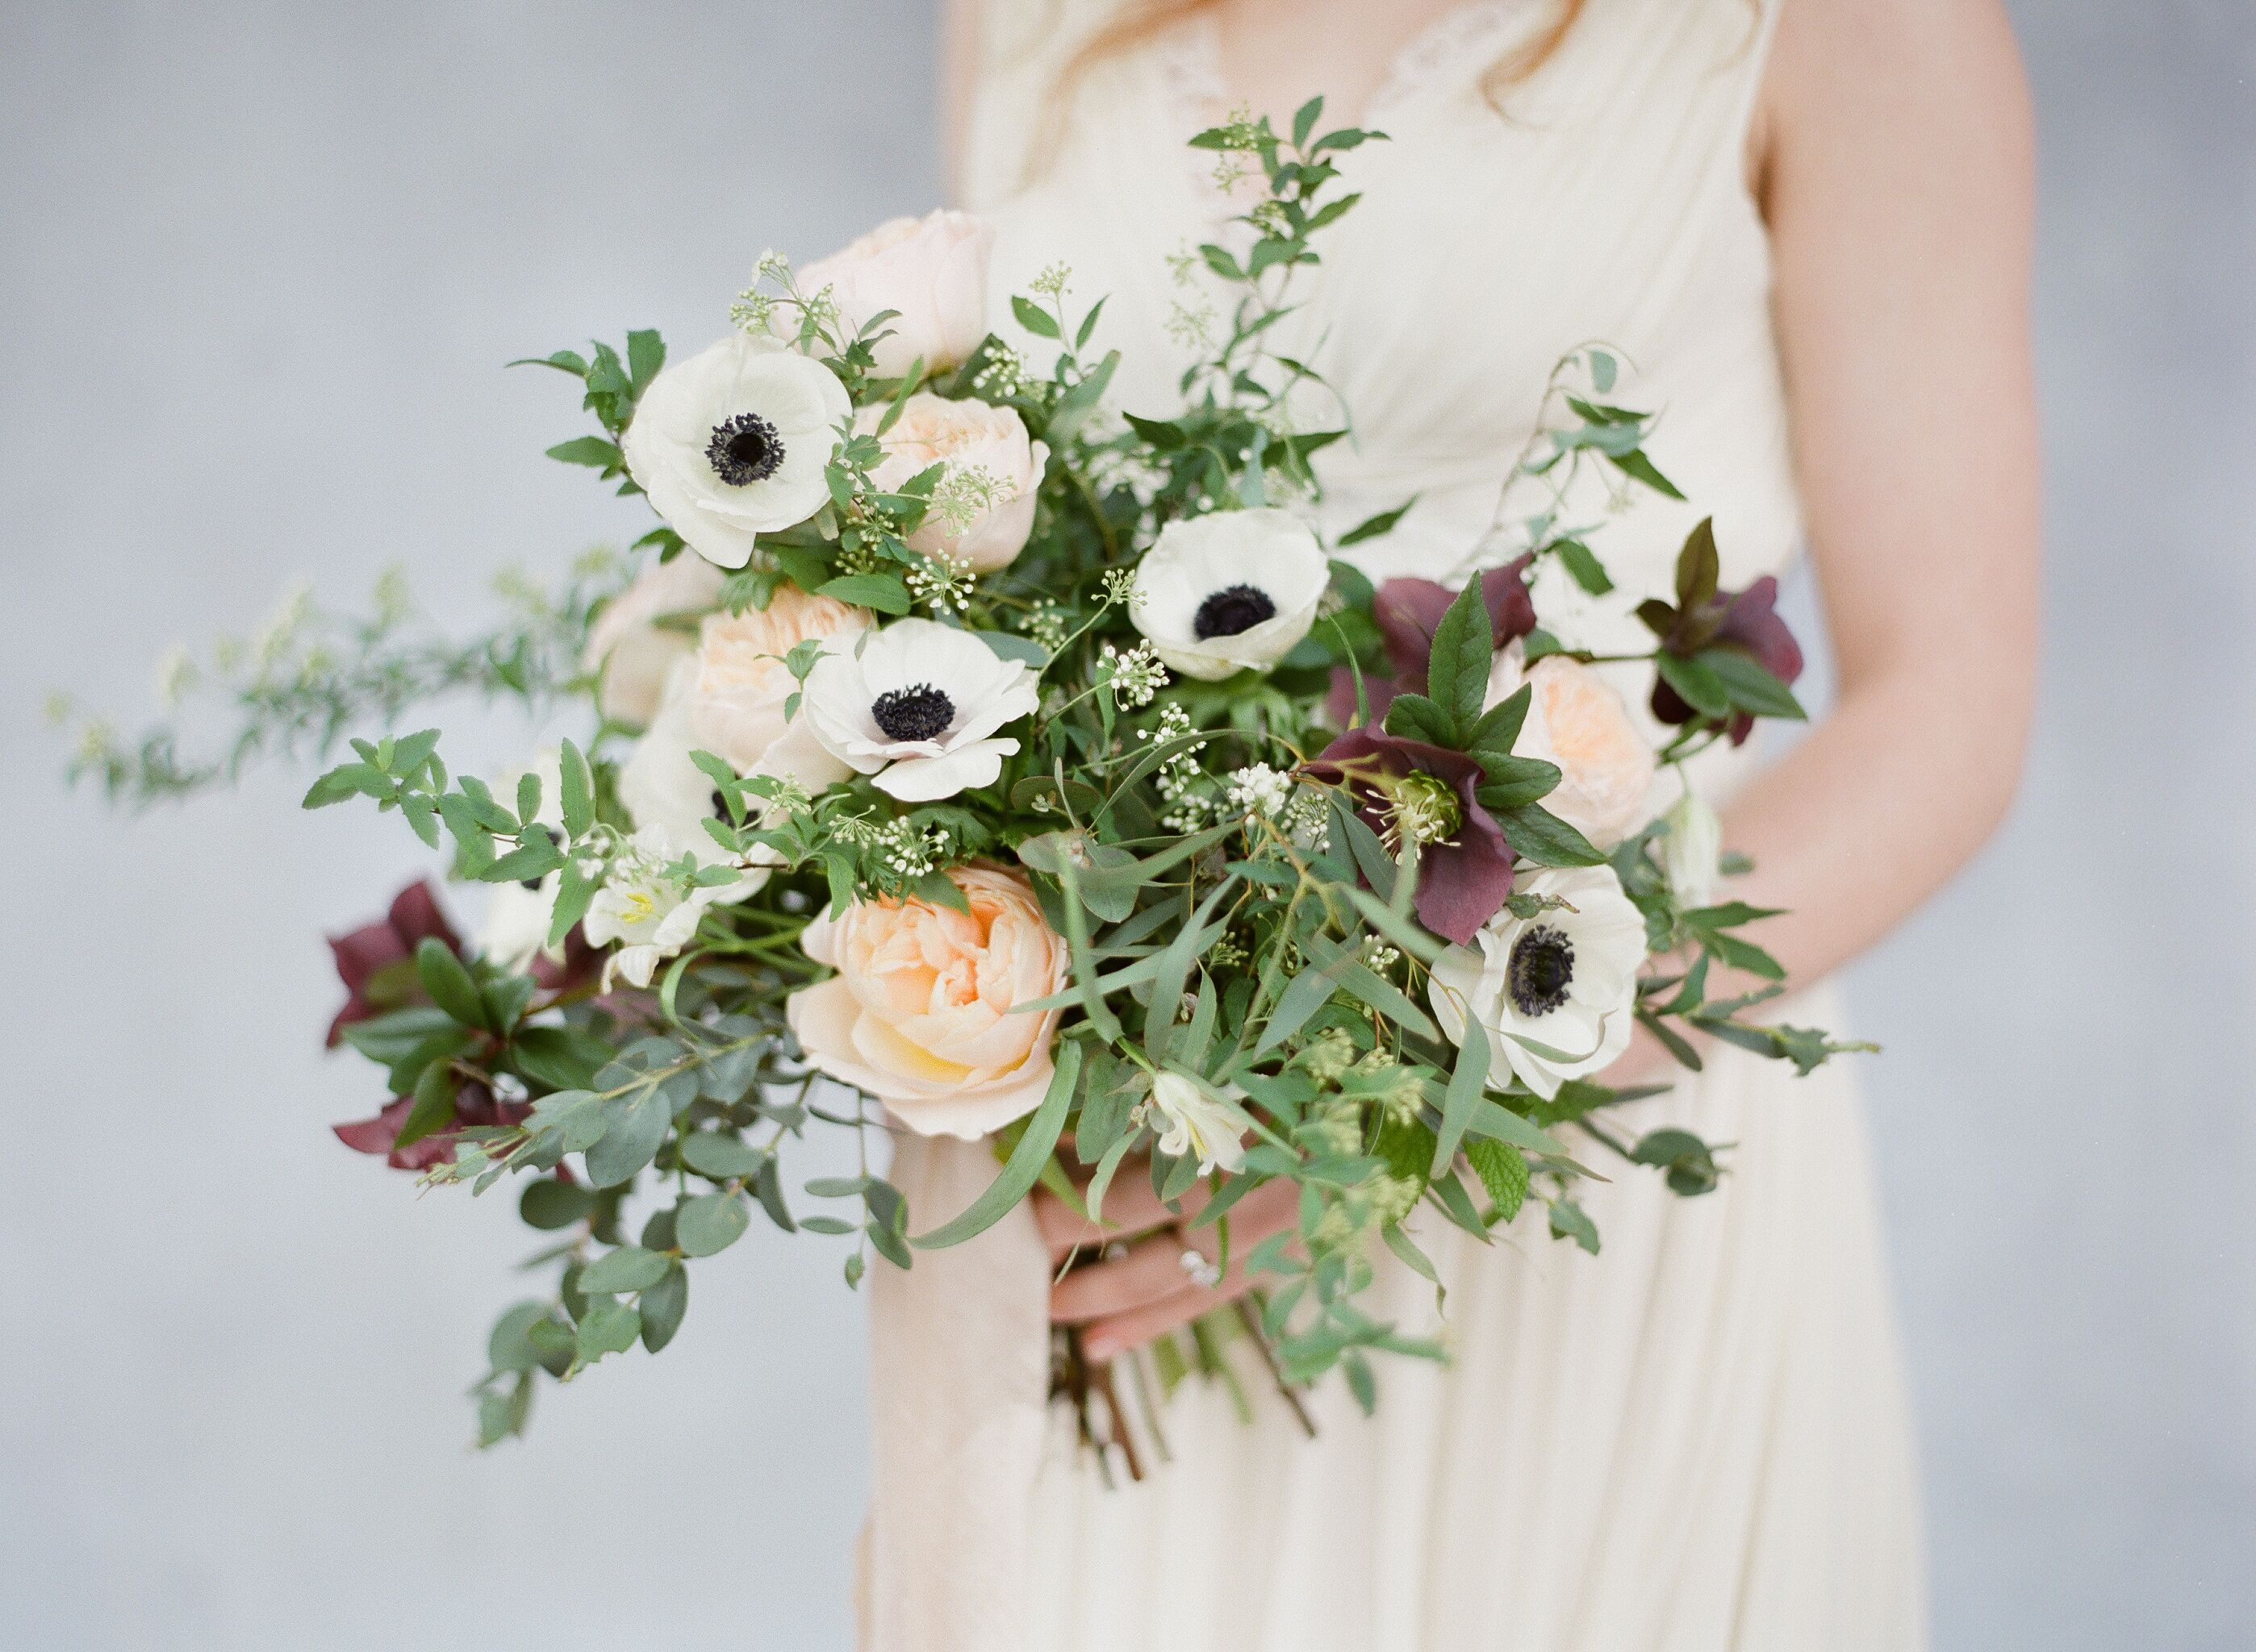 Favorite wedding flowers of Real Weddings by Blush Floral Design